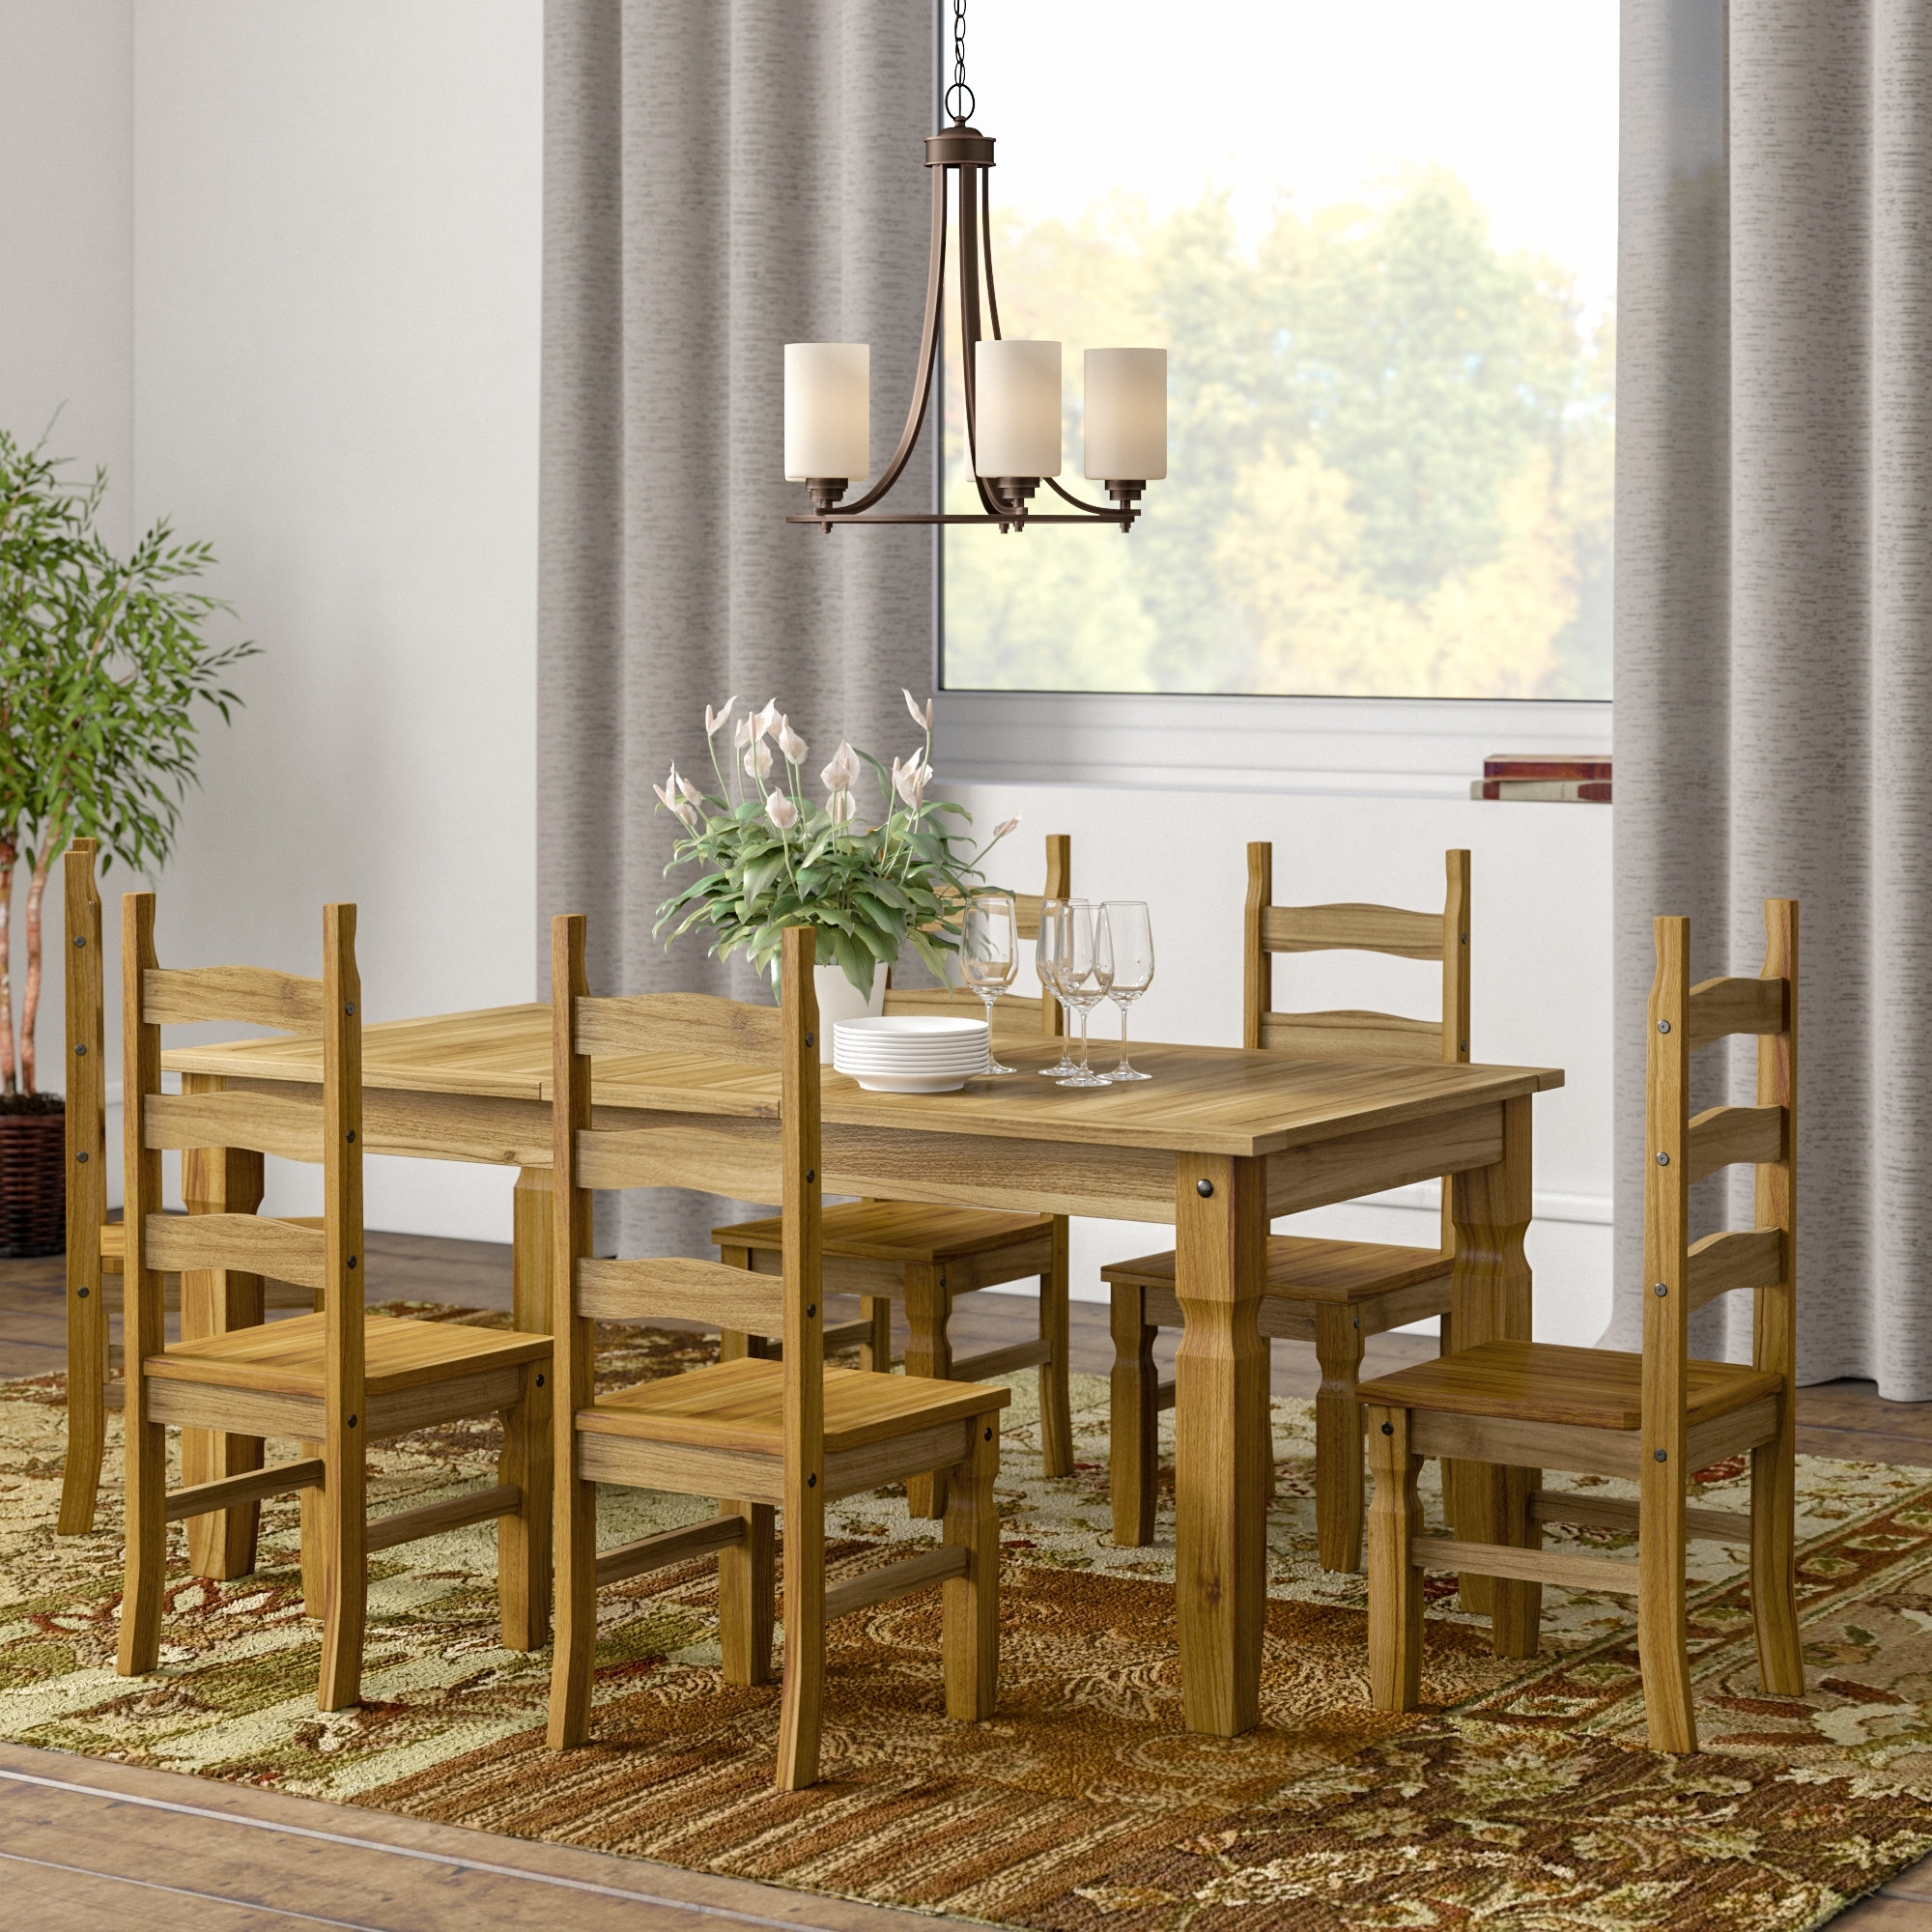 Extendable Dining Table And 6 Chairs Pertaining To Well Known Home & Haus Classic Corona Extendable Dining Set With 6 Chairs (View 6 of 25)